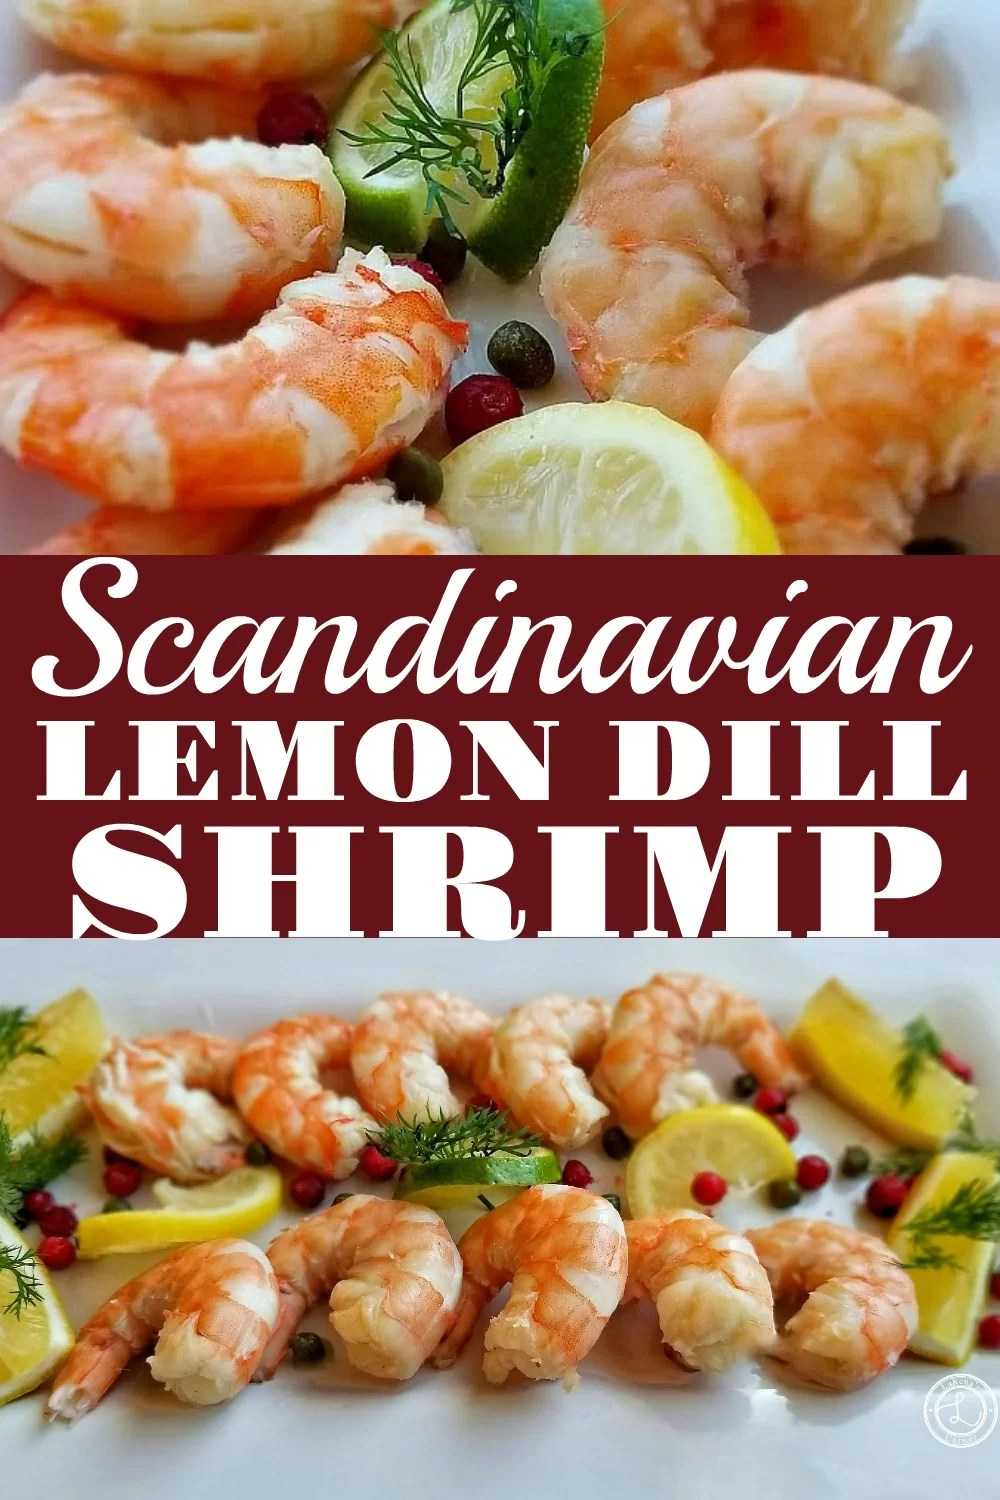 2 photos of the Scandinavian Lemon DIll Shrimp. One picture is of a platter of shrimp decorated with dill, lemons, and multicolored peppercorns. One picture is a closeup of several shrimp.